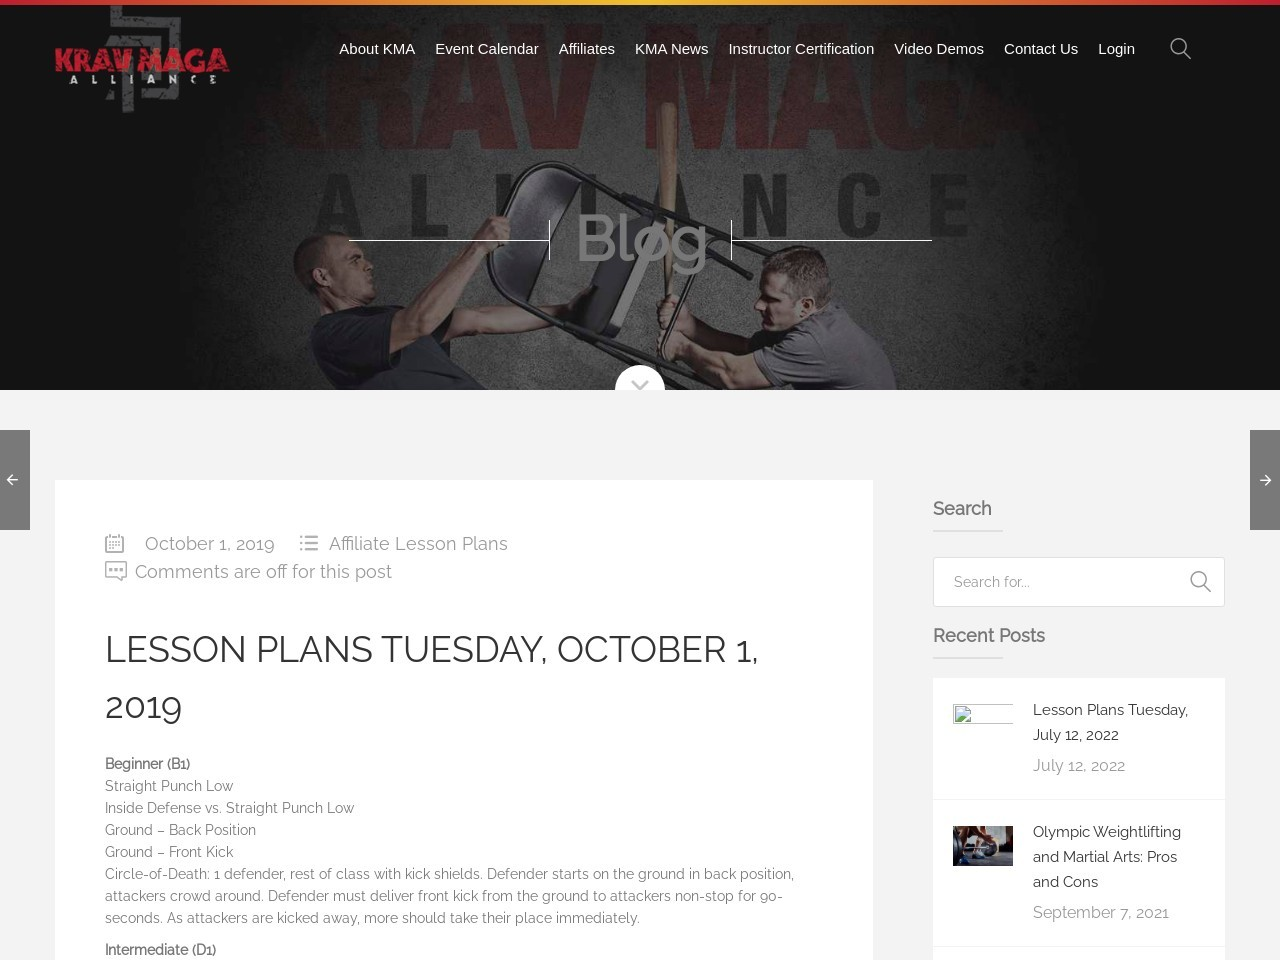 Lesson Plans Tuesday, October 1, 2019